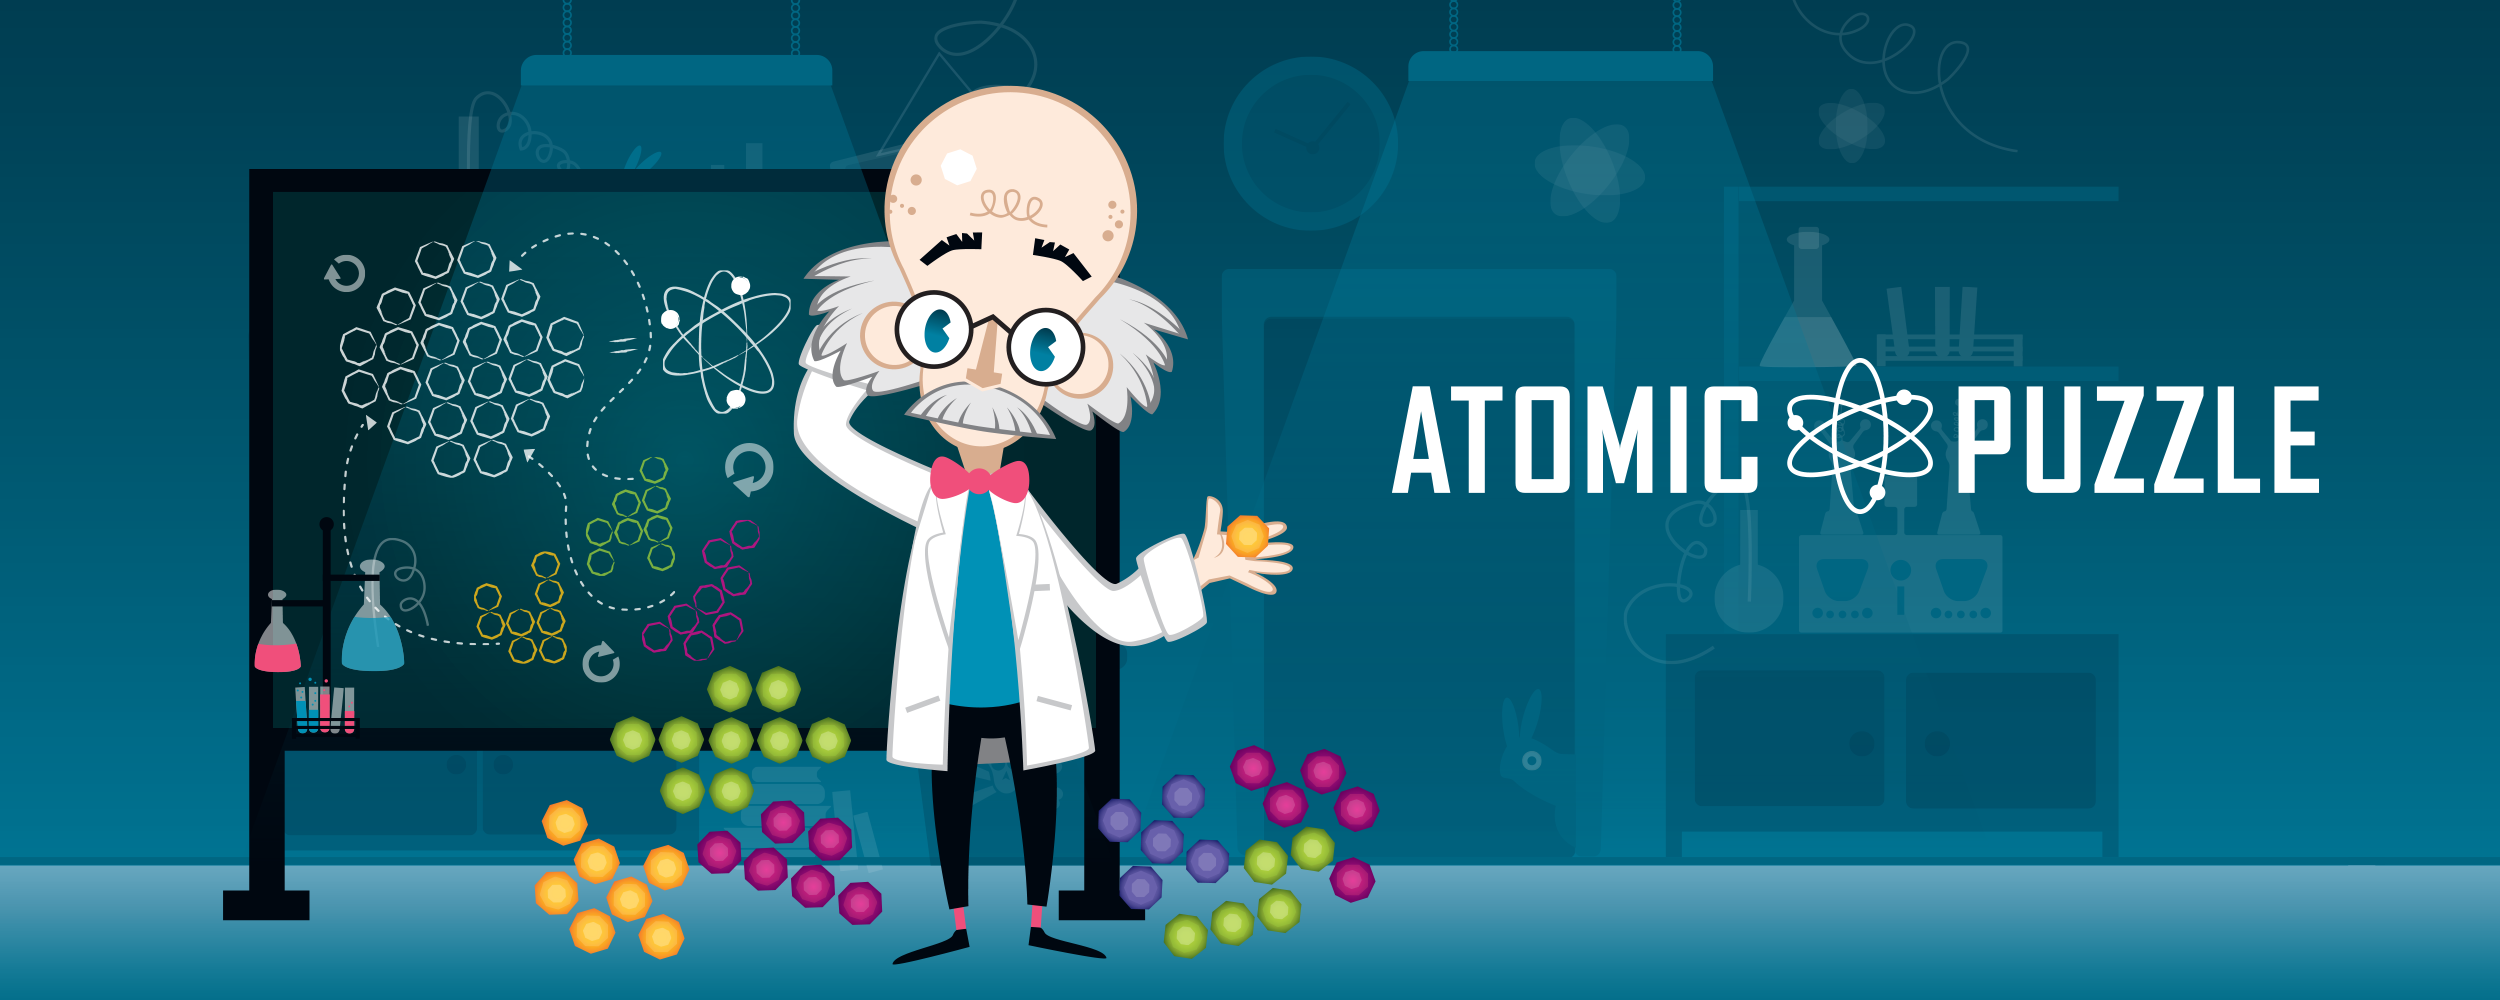 atomicpuzzle_with_logo